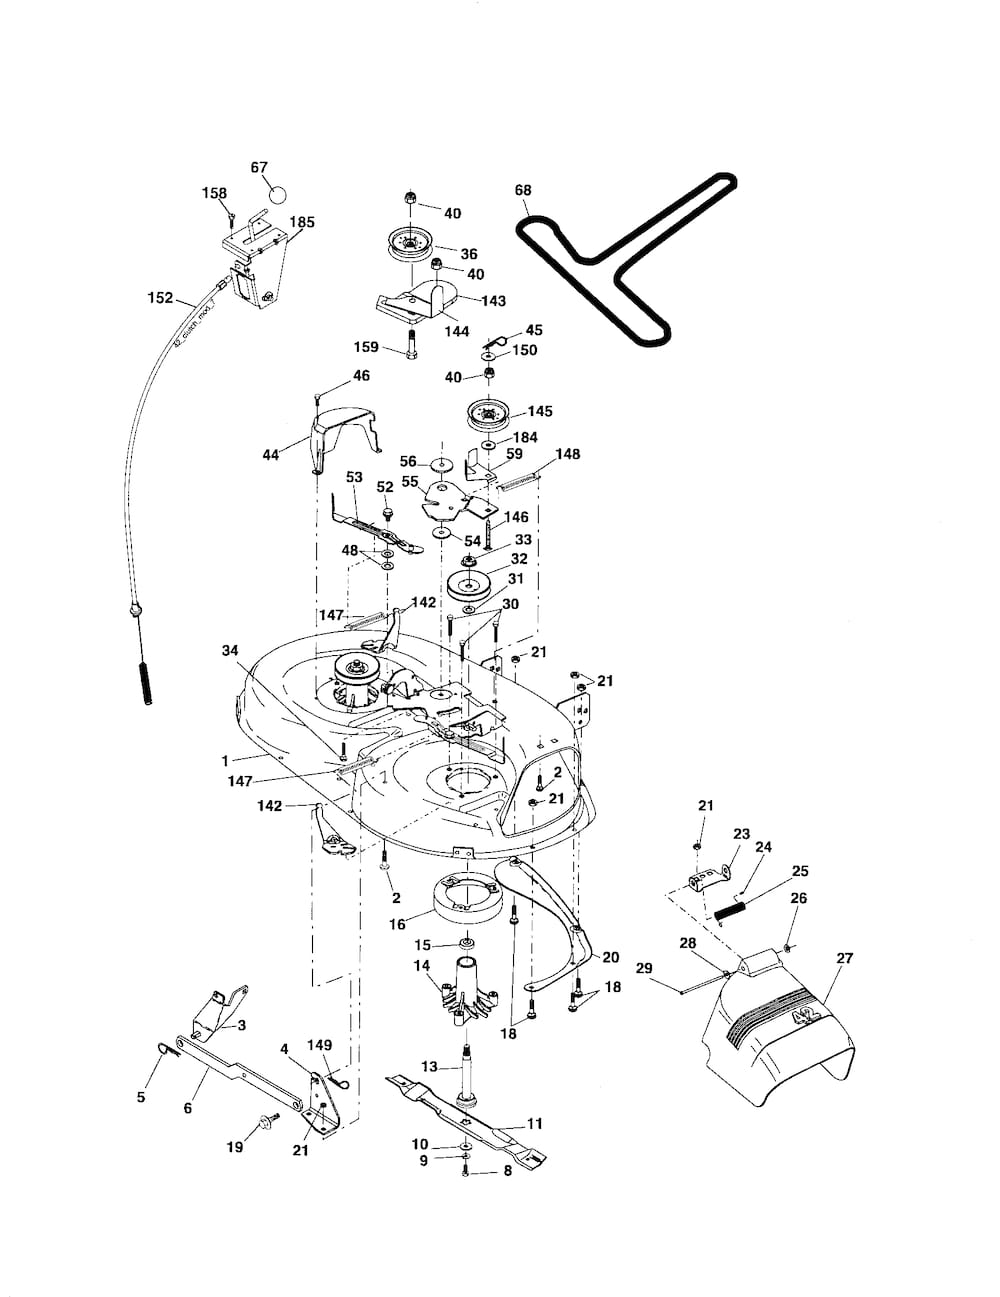 ... and Parts List for POULAN Riding-Mower-Tractor-Parts model # PB1842LT